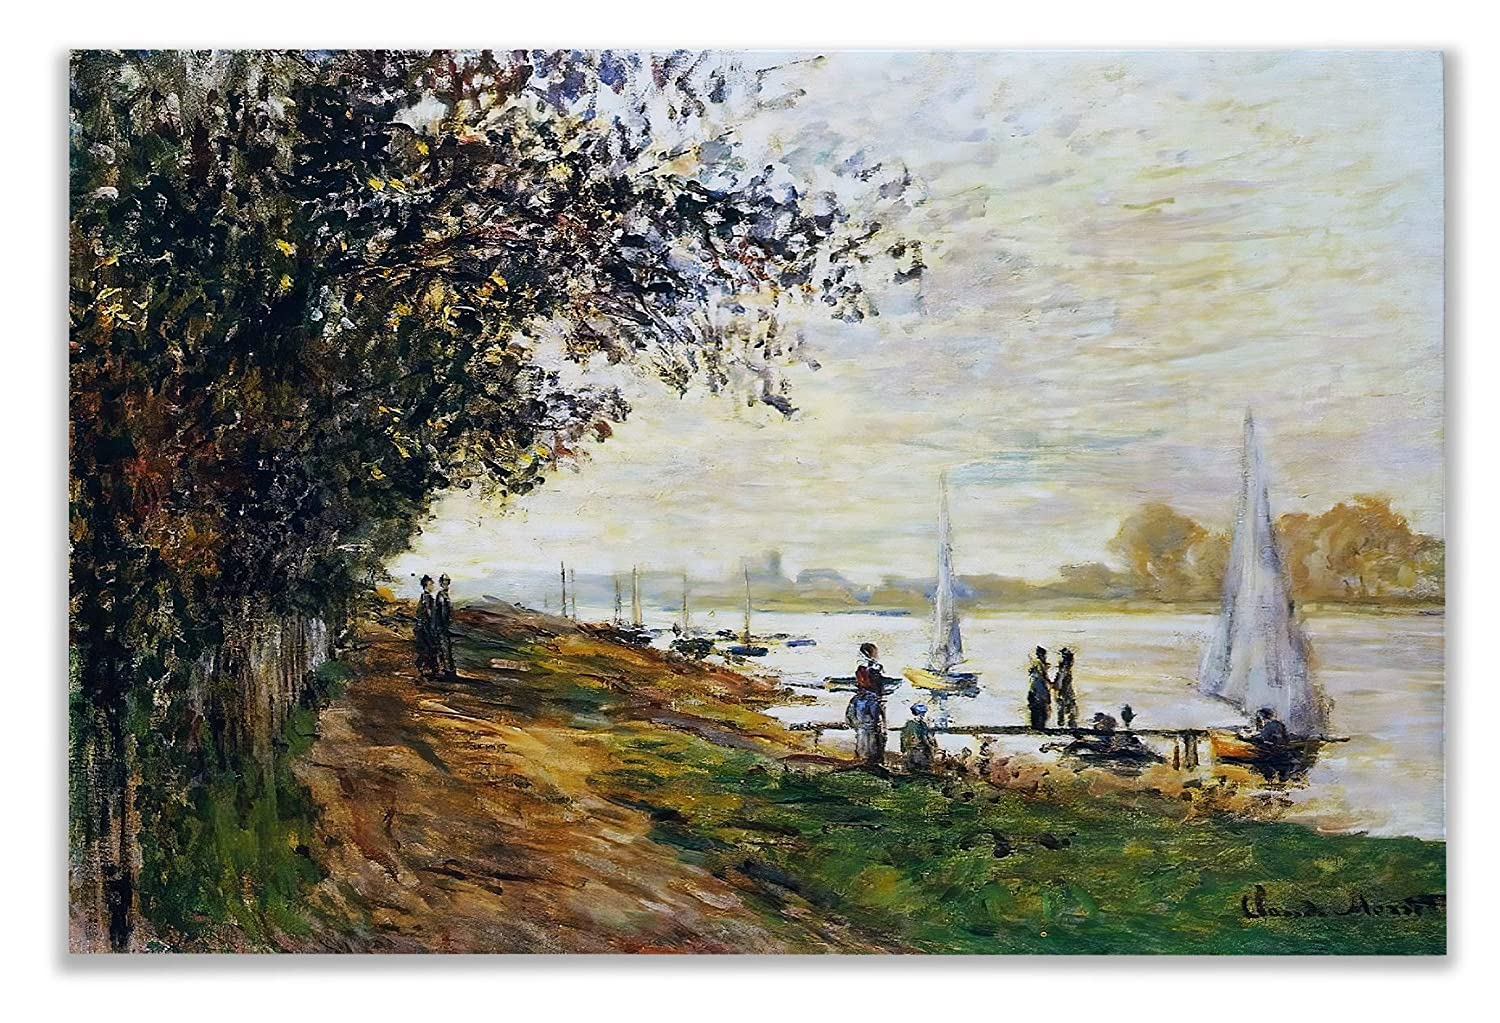 Monet Wall Art Collection The The Riverbank at Le Petit-Gennevilliers, Sunset, 1875 Canvas Prints Wrapped Gallery Wall Art   Stretched and Framed Ready to Hang 12X18,